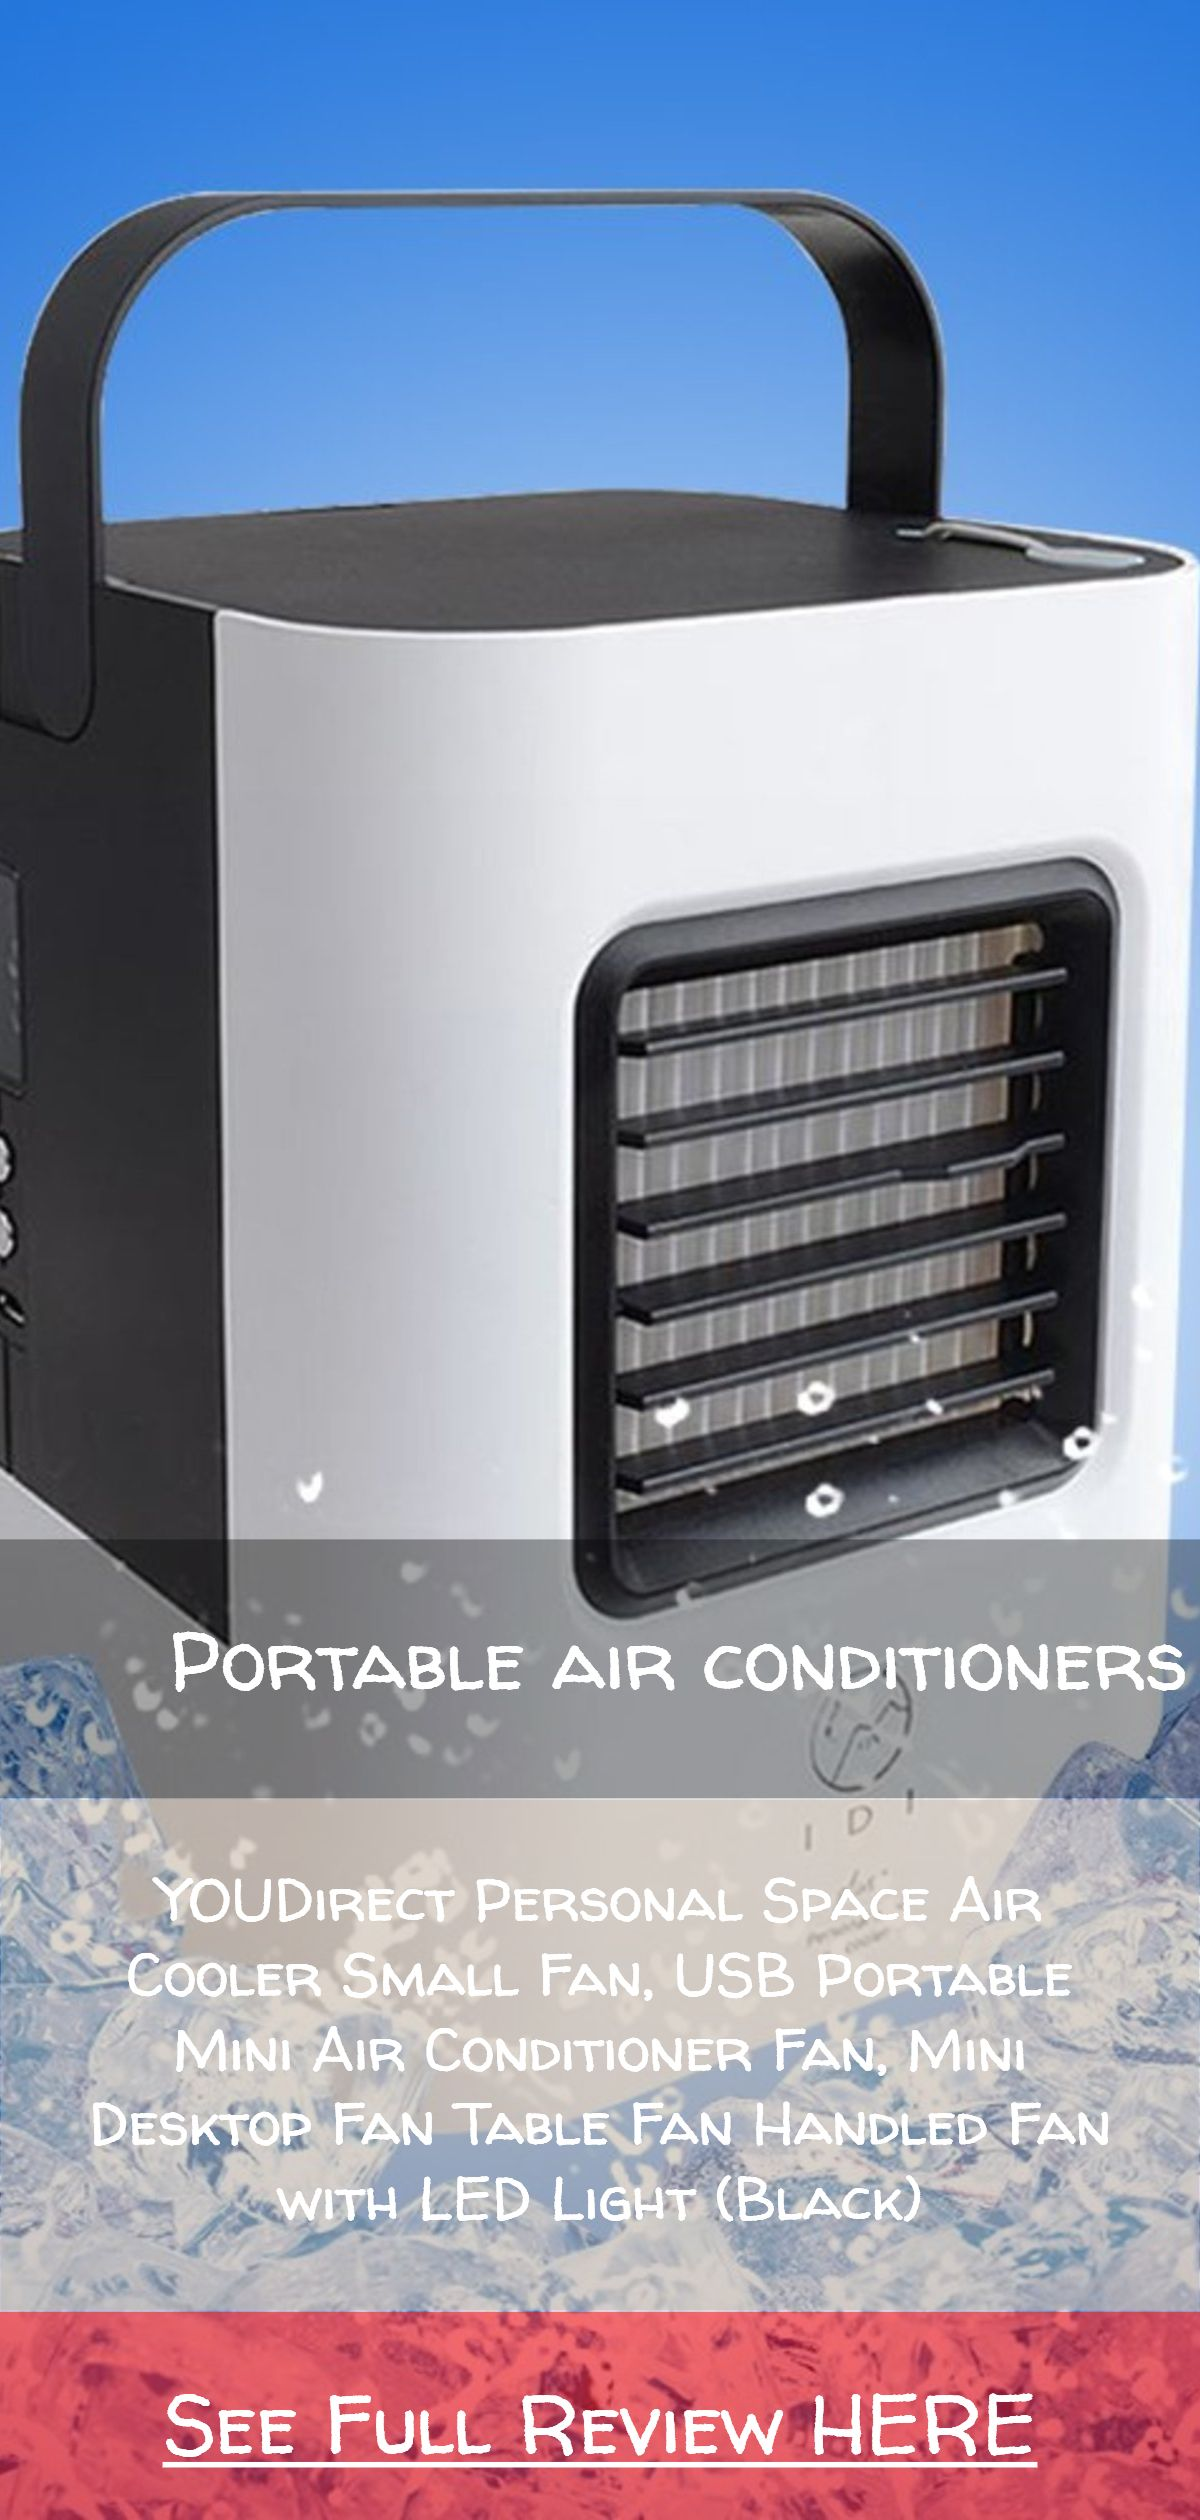 For The Car Camping And Small Places Portable Air Conditioners Youdirect Personal Space Air Cooler Small F Air Cooler Air Cooler Fan Evaporative Air Cooler